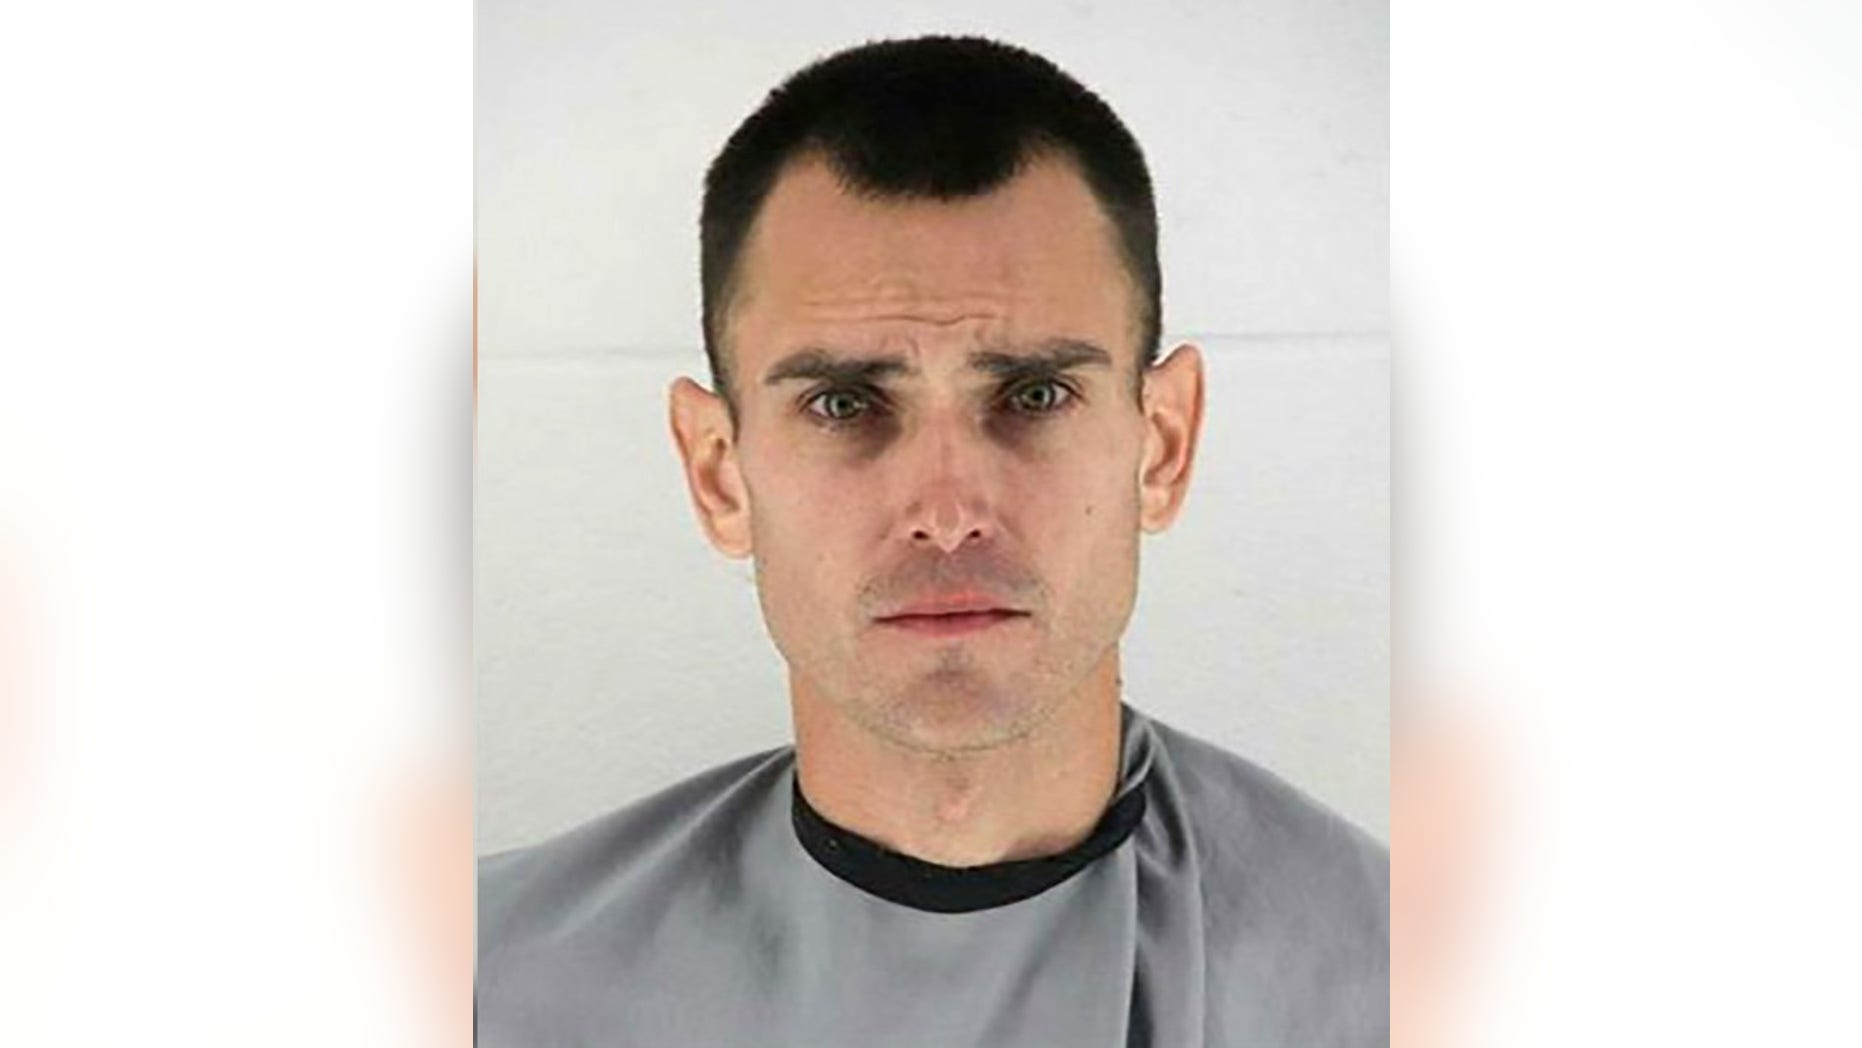 Justin Todd Rey, 36, testified that he chopped of his wife's body to protect his family.